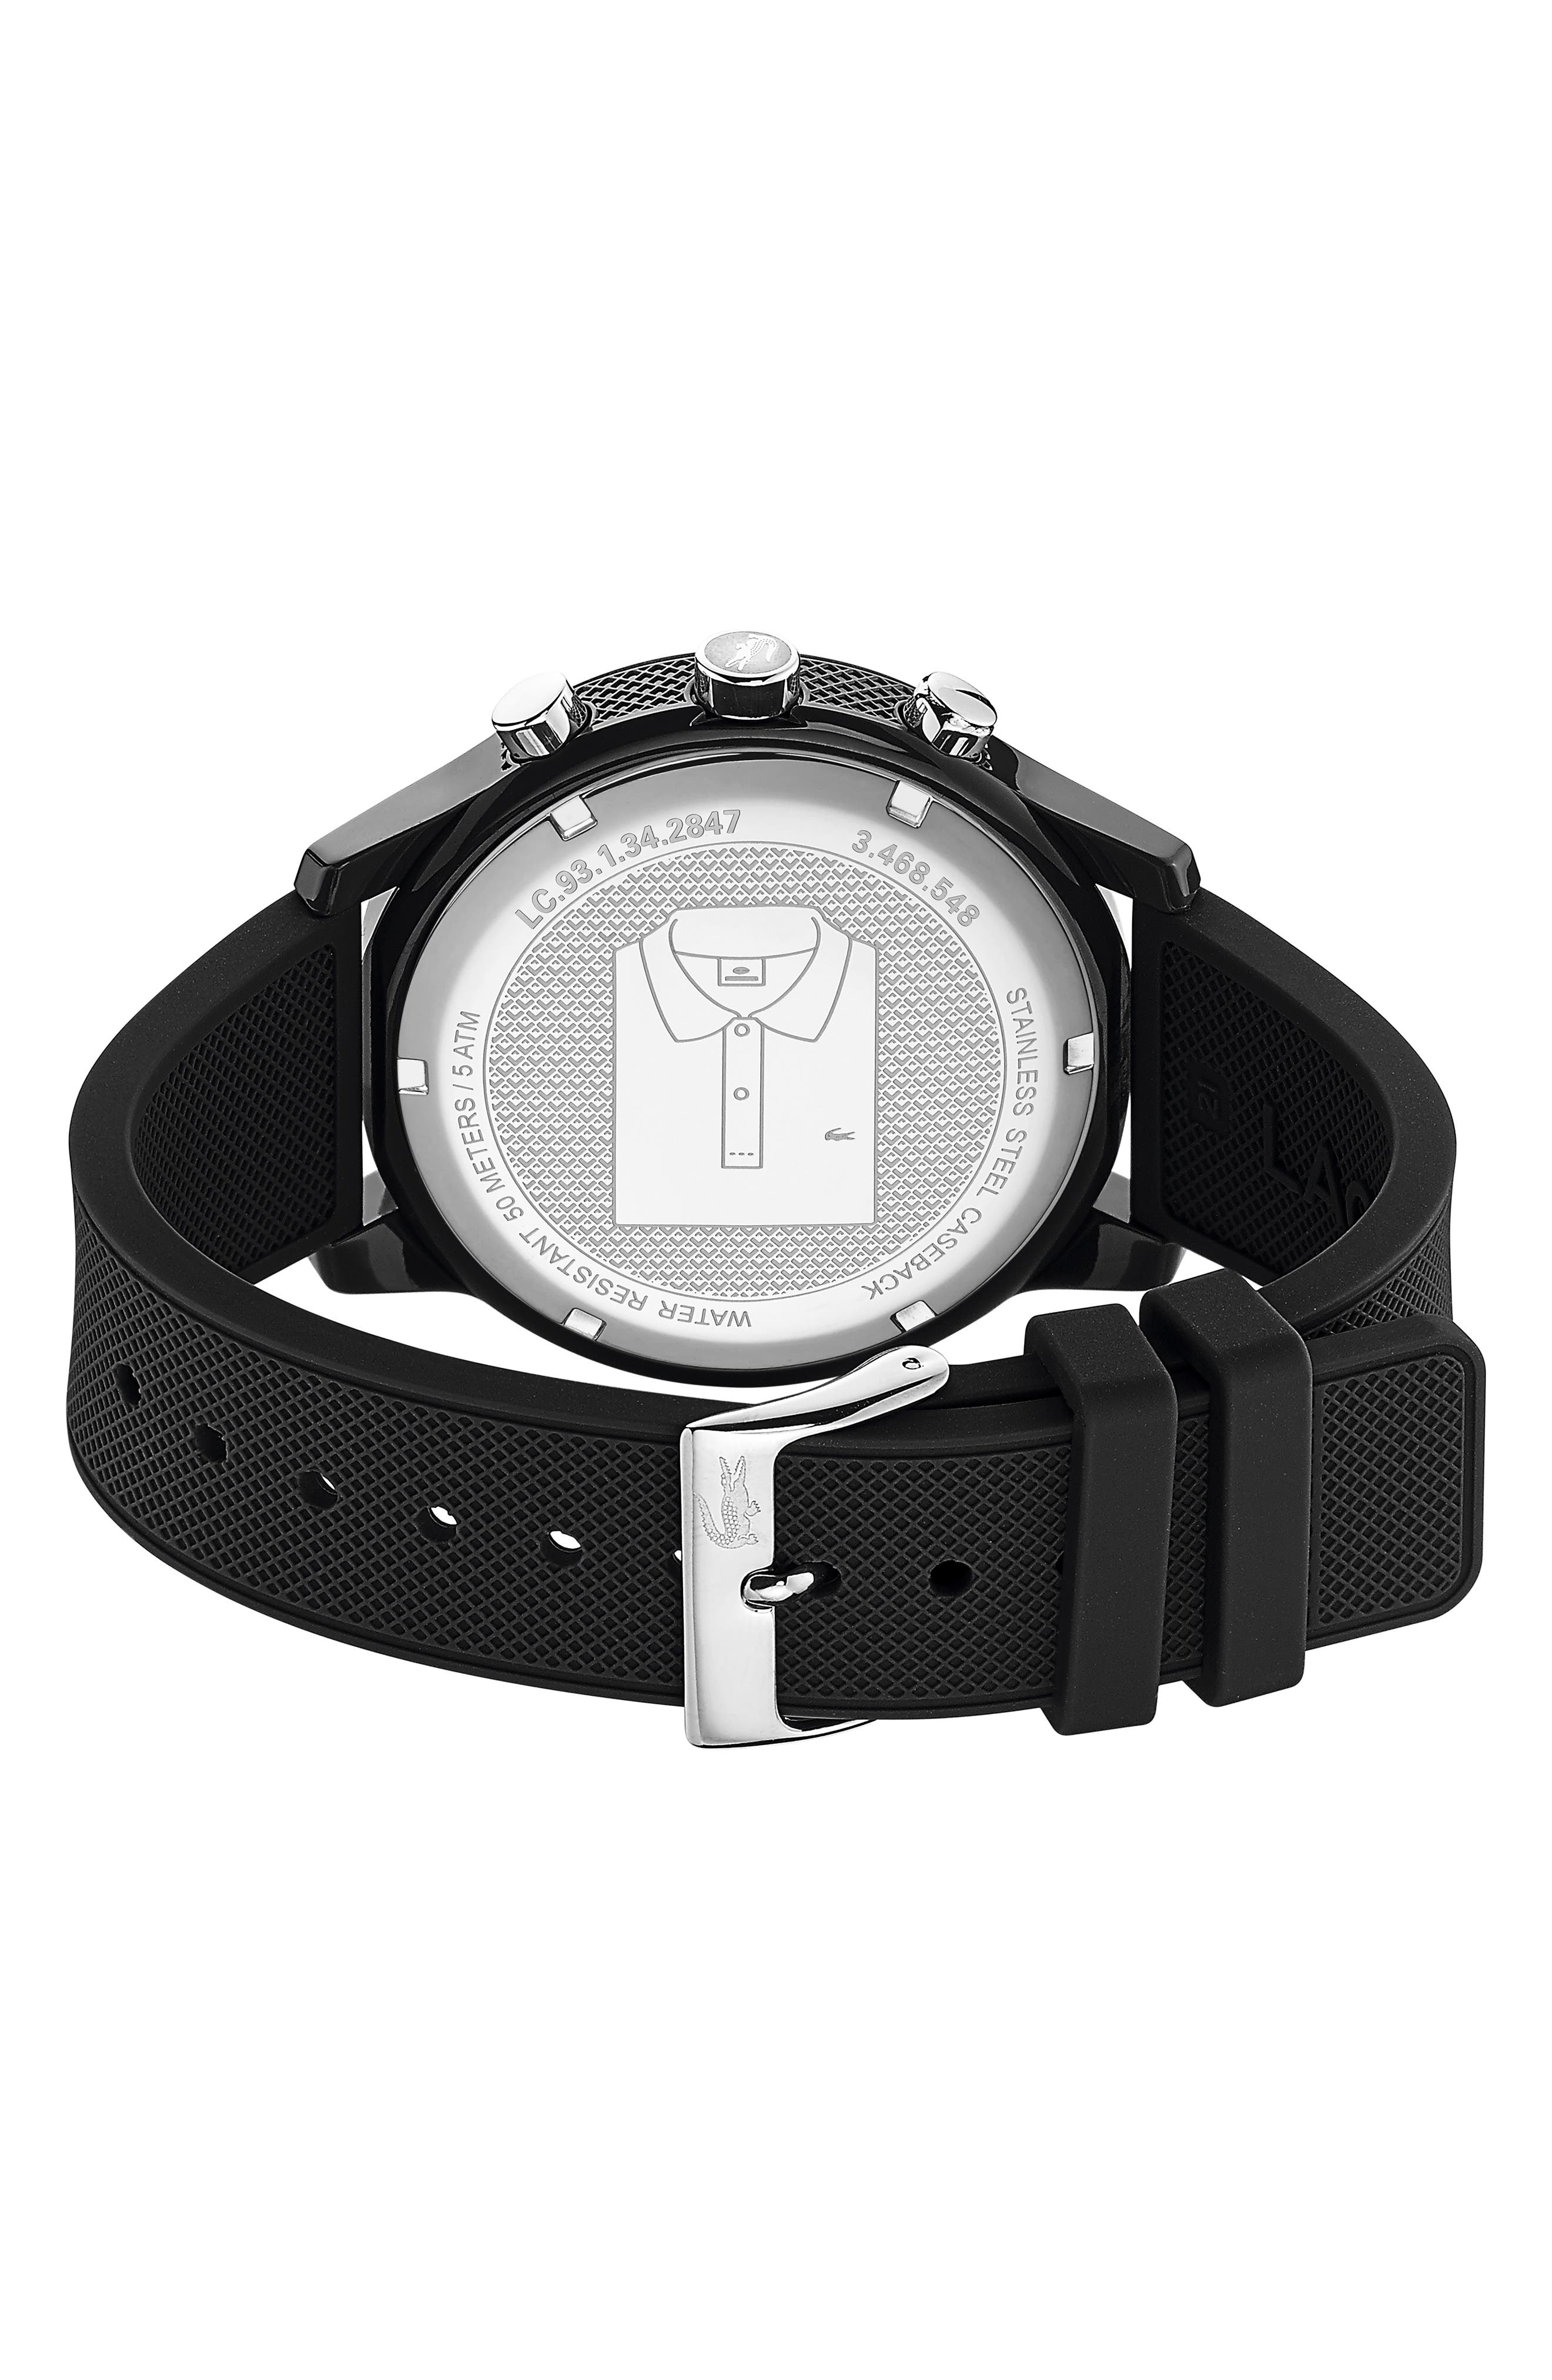 LACOSTE, 12.12 Chronograph Silicone Band Watch, 44mm, Alternate thumbnail 2, color, BLACK